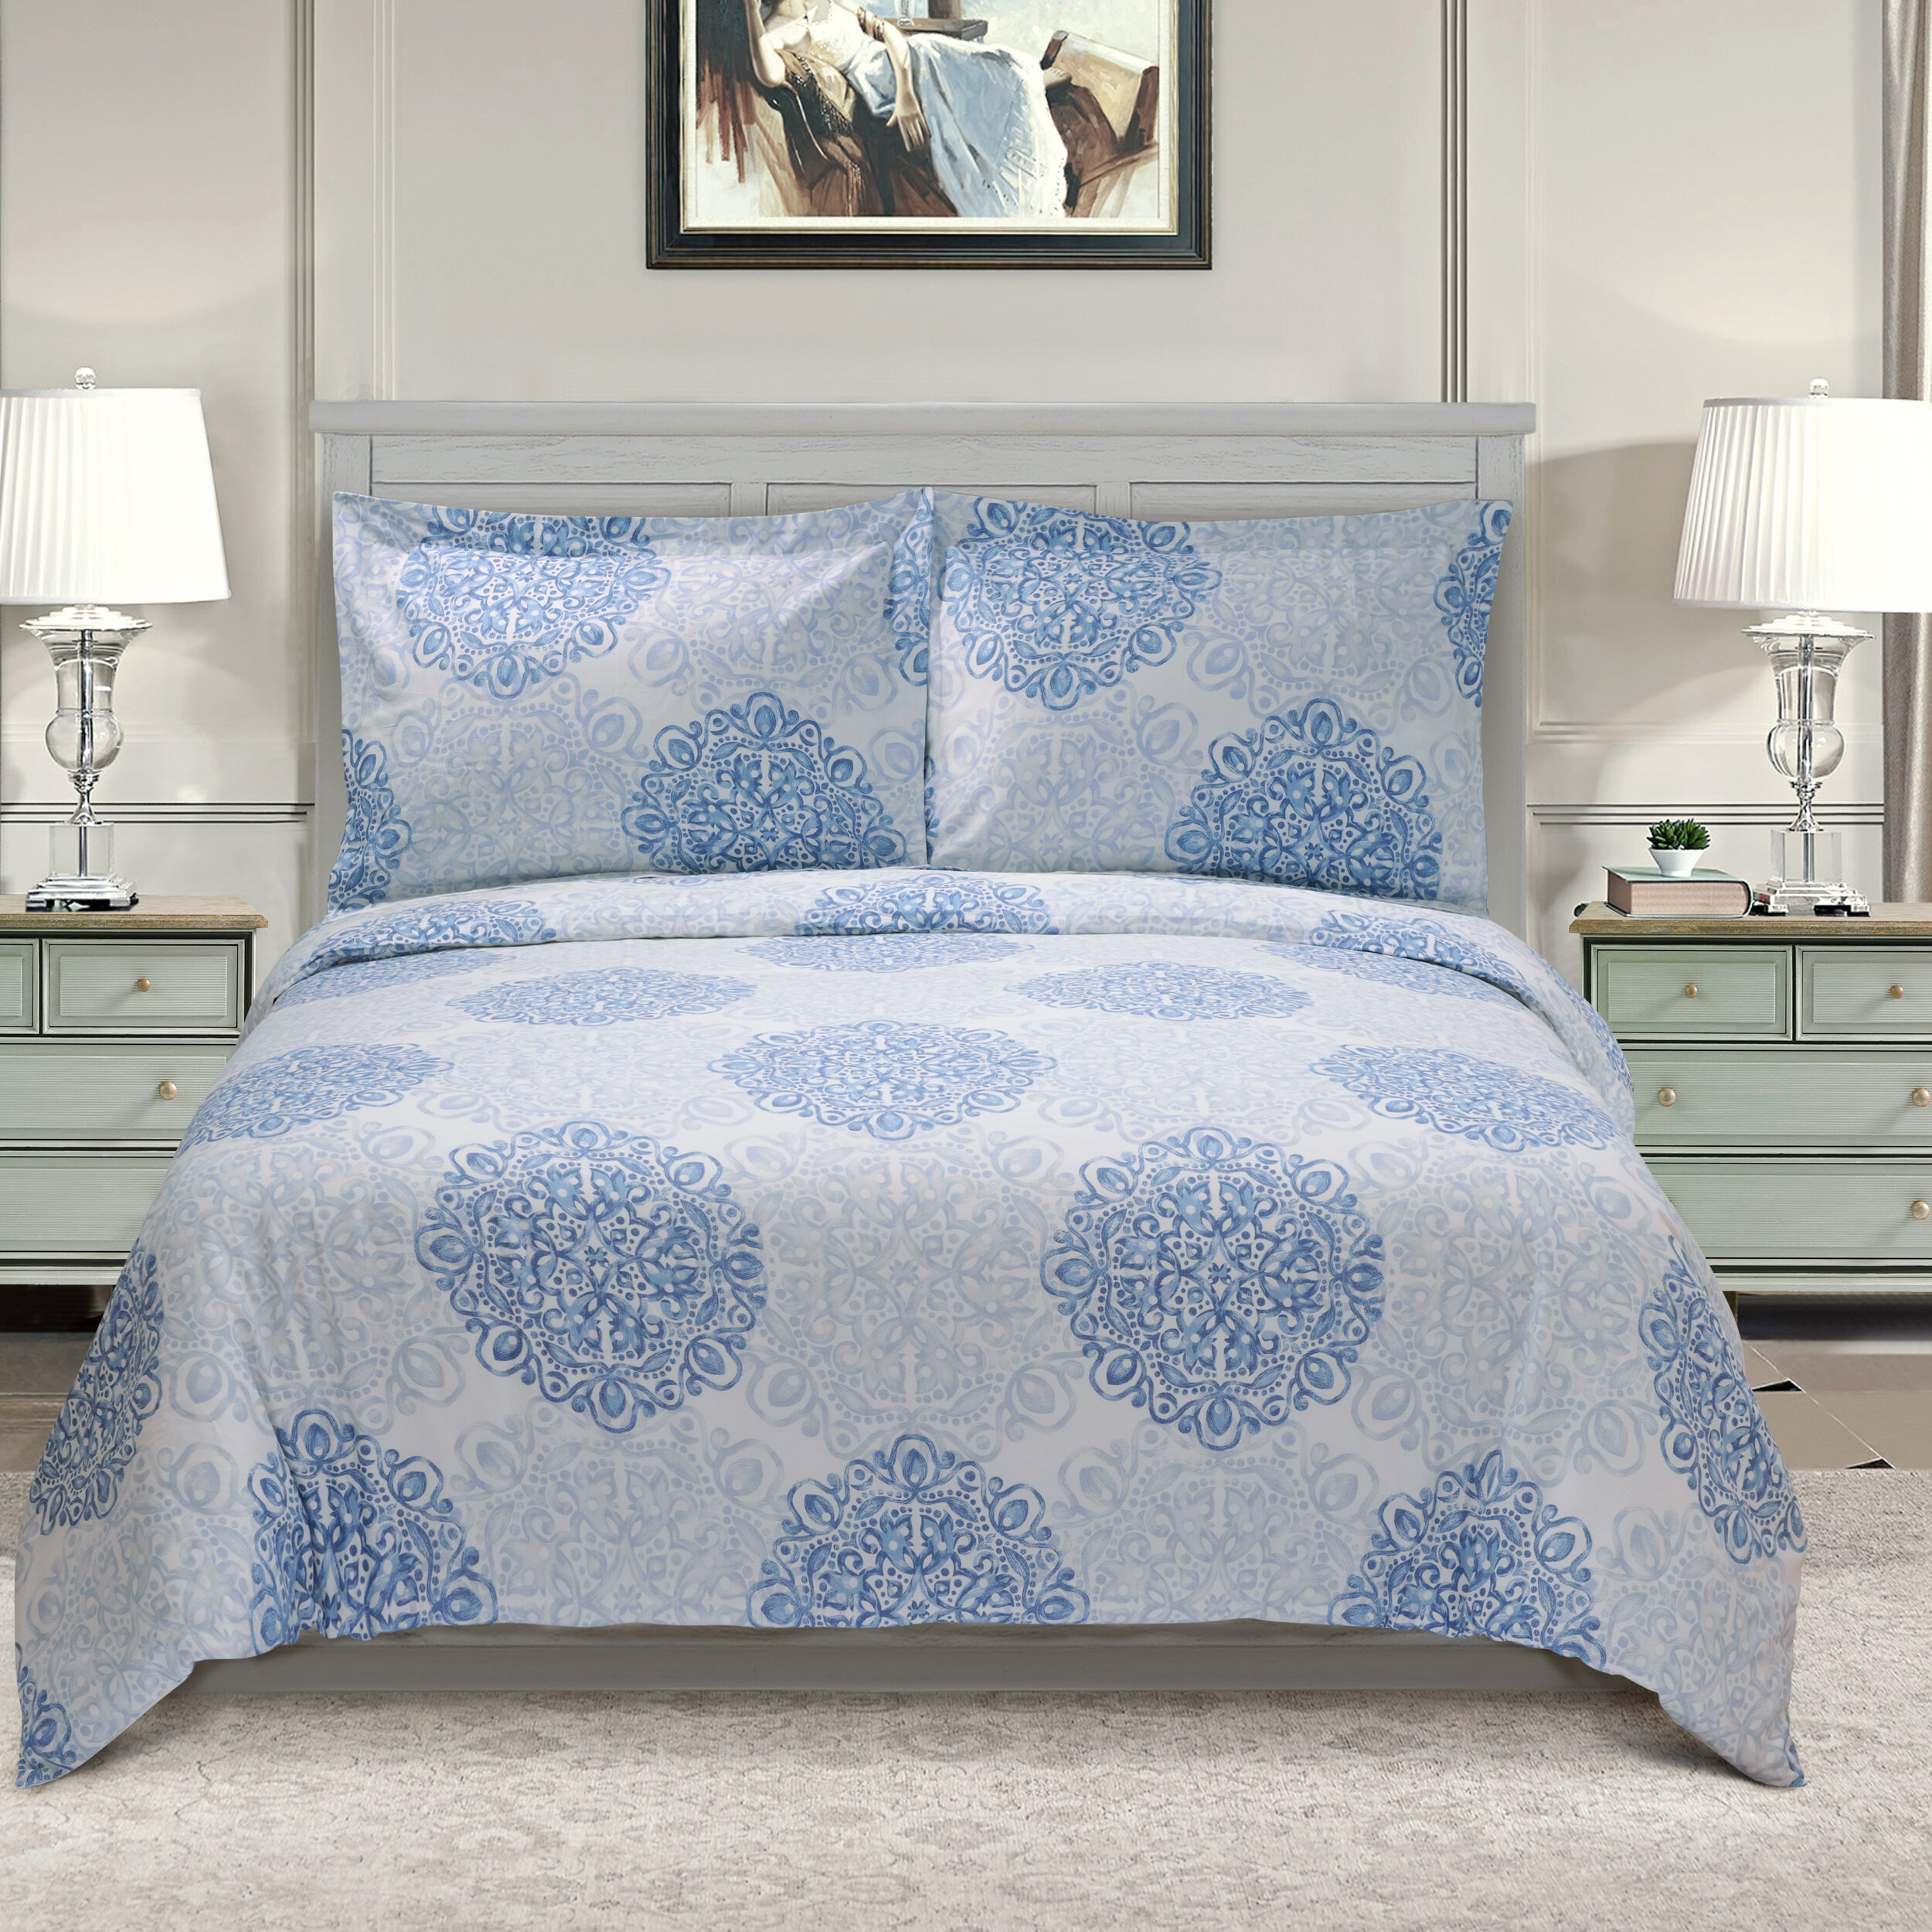 The Twillery Co Benito Damask Egyptian Quality Cotton Duvet Cover Set Reviews Wayfair